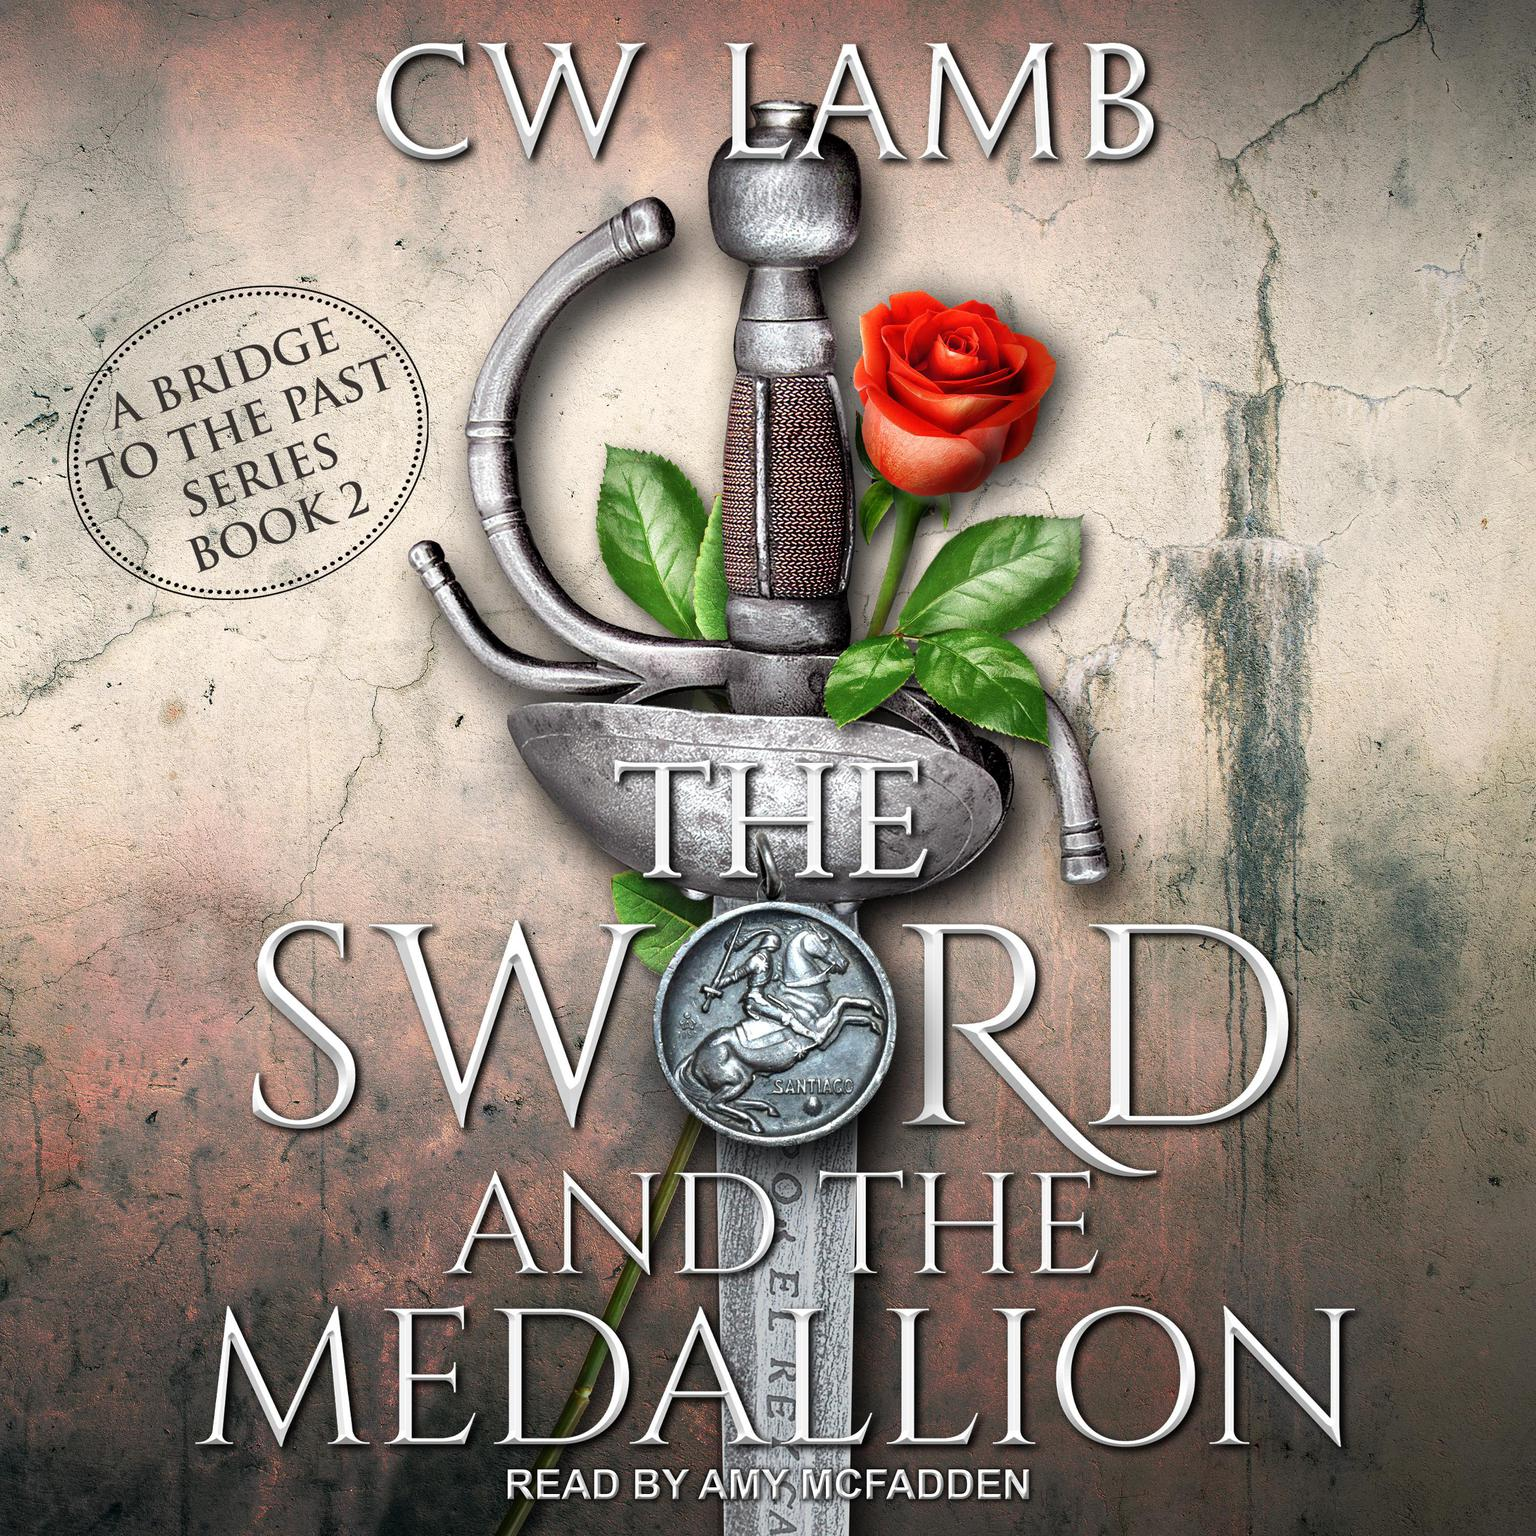 The Sword and the Medallion Audiobook, by Charles Lamb